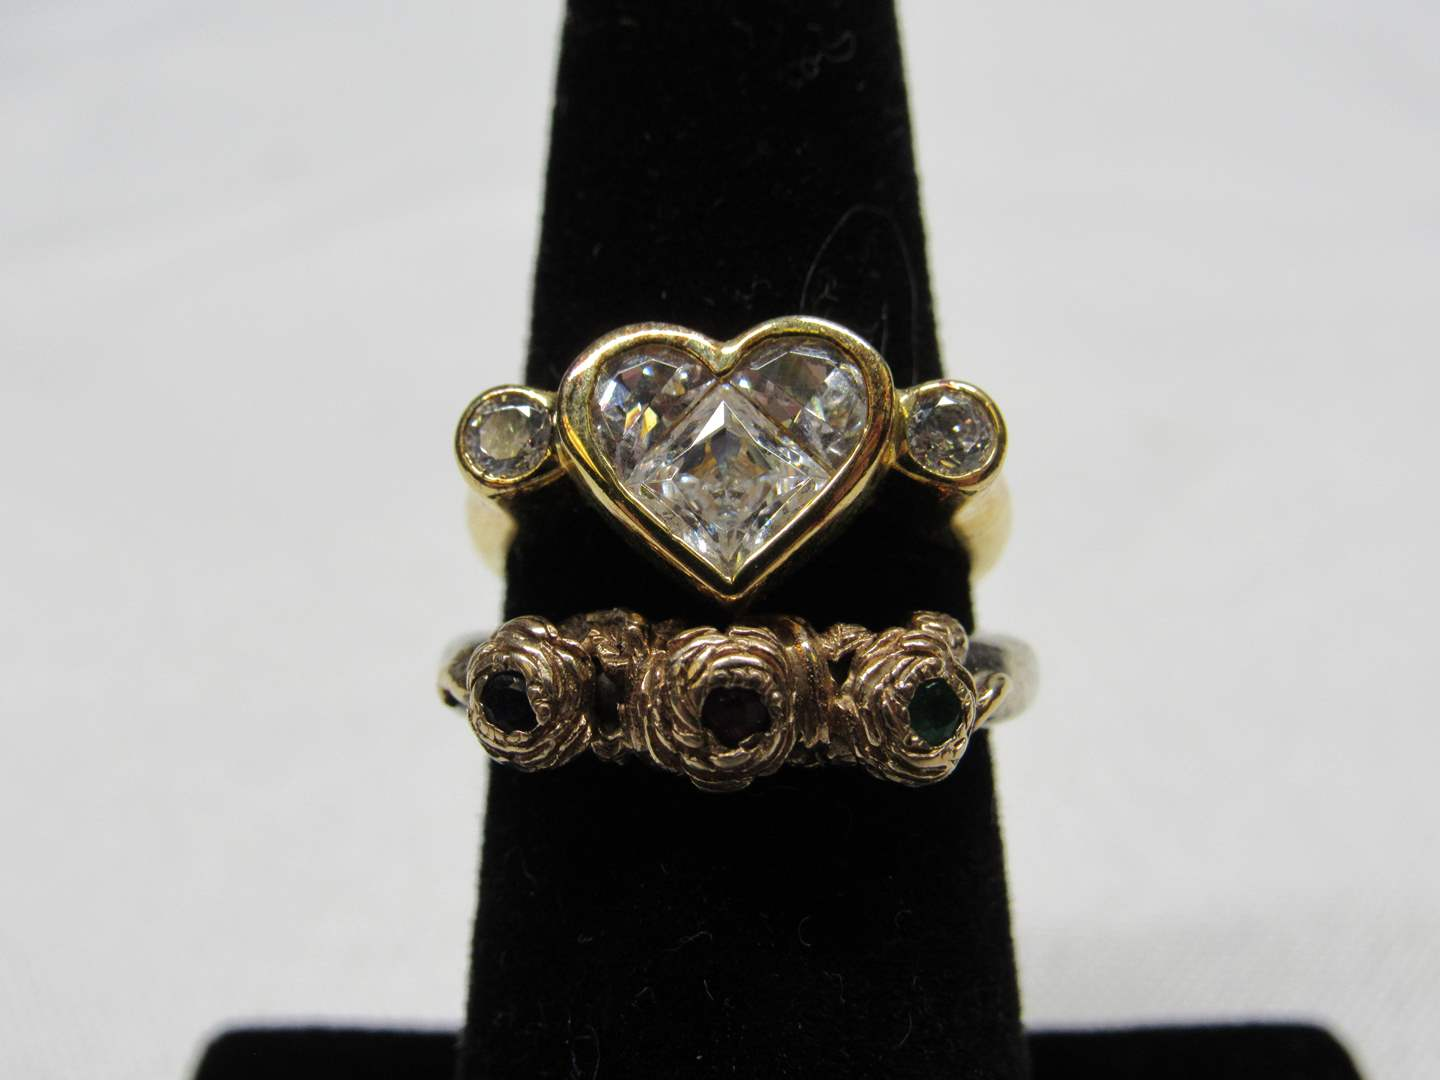 Lot # 229  2 sterling silver rings (one overlay) the other has 14K gold accents both size 6 (main image)